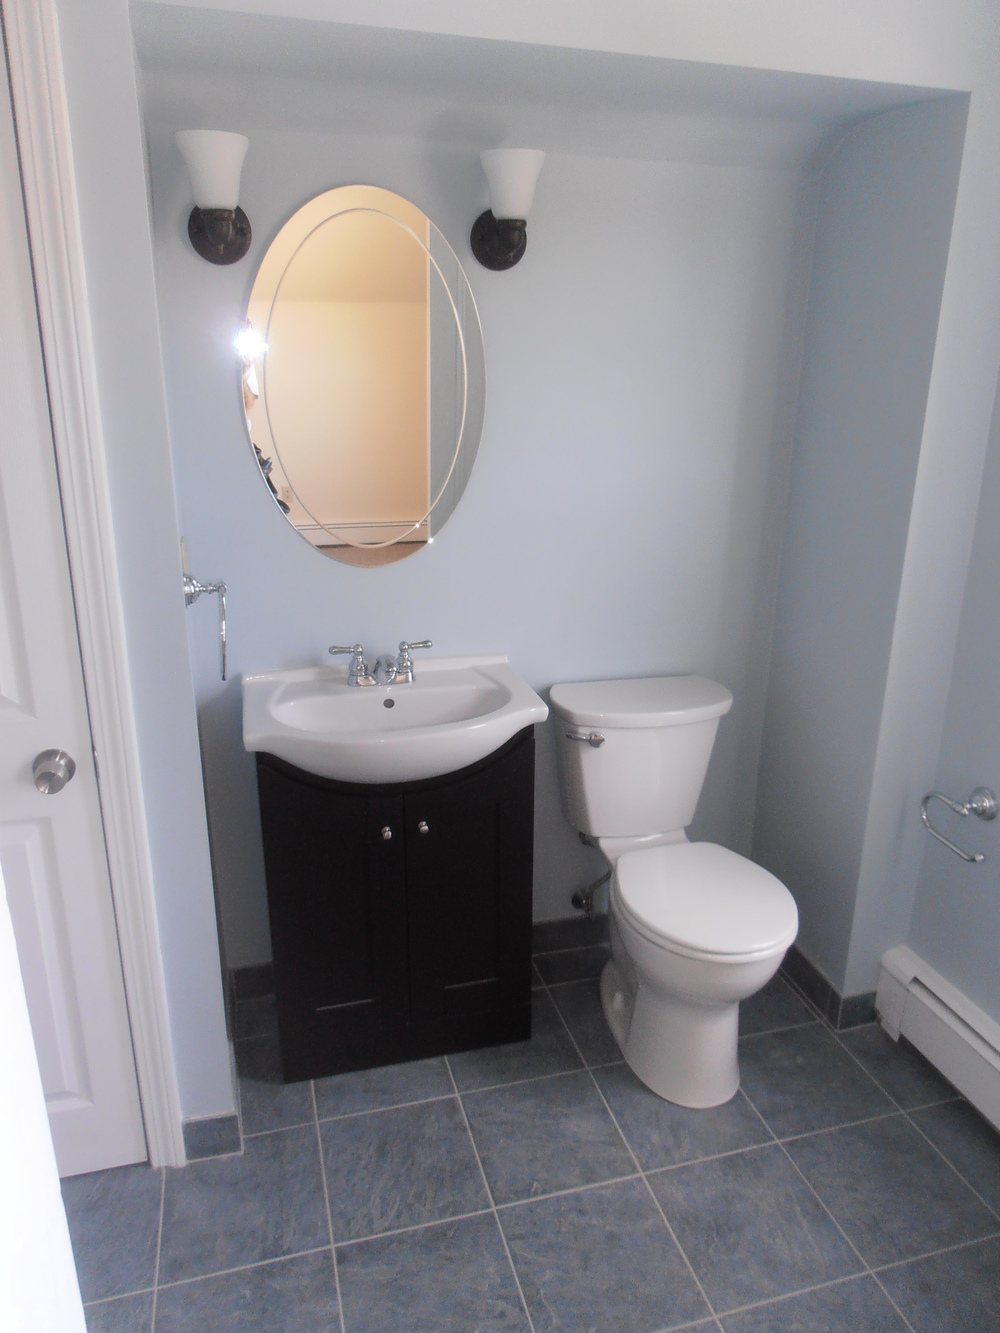 1 Small Bathroom Fixtures and Tiles Roslindale Cashman.JPG